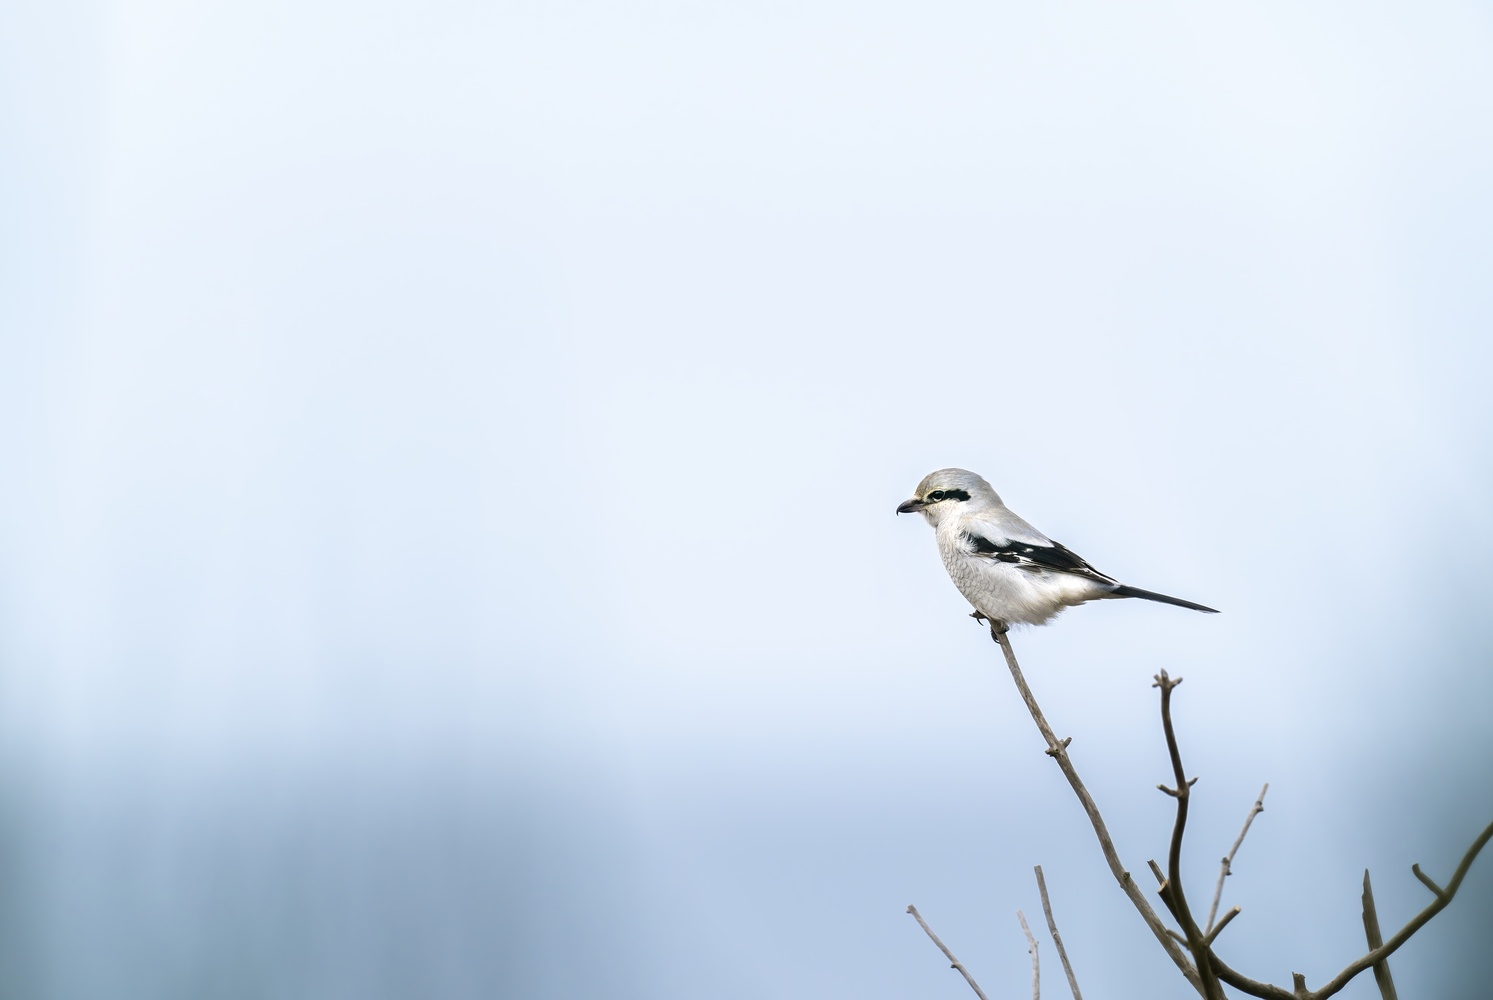 Northern Shrike on the lookout by Gordon Hatusupy